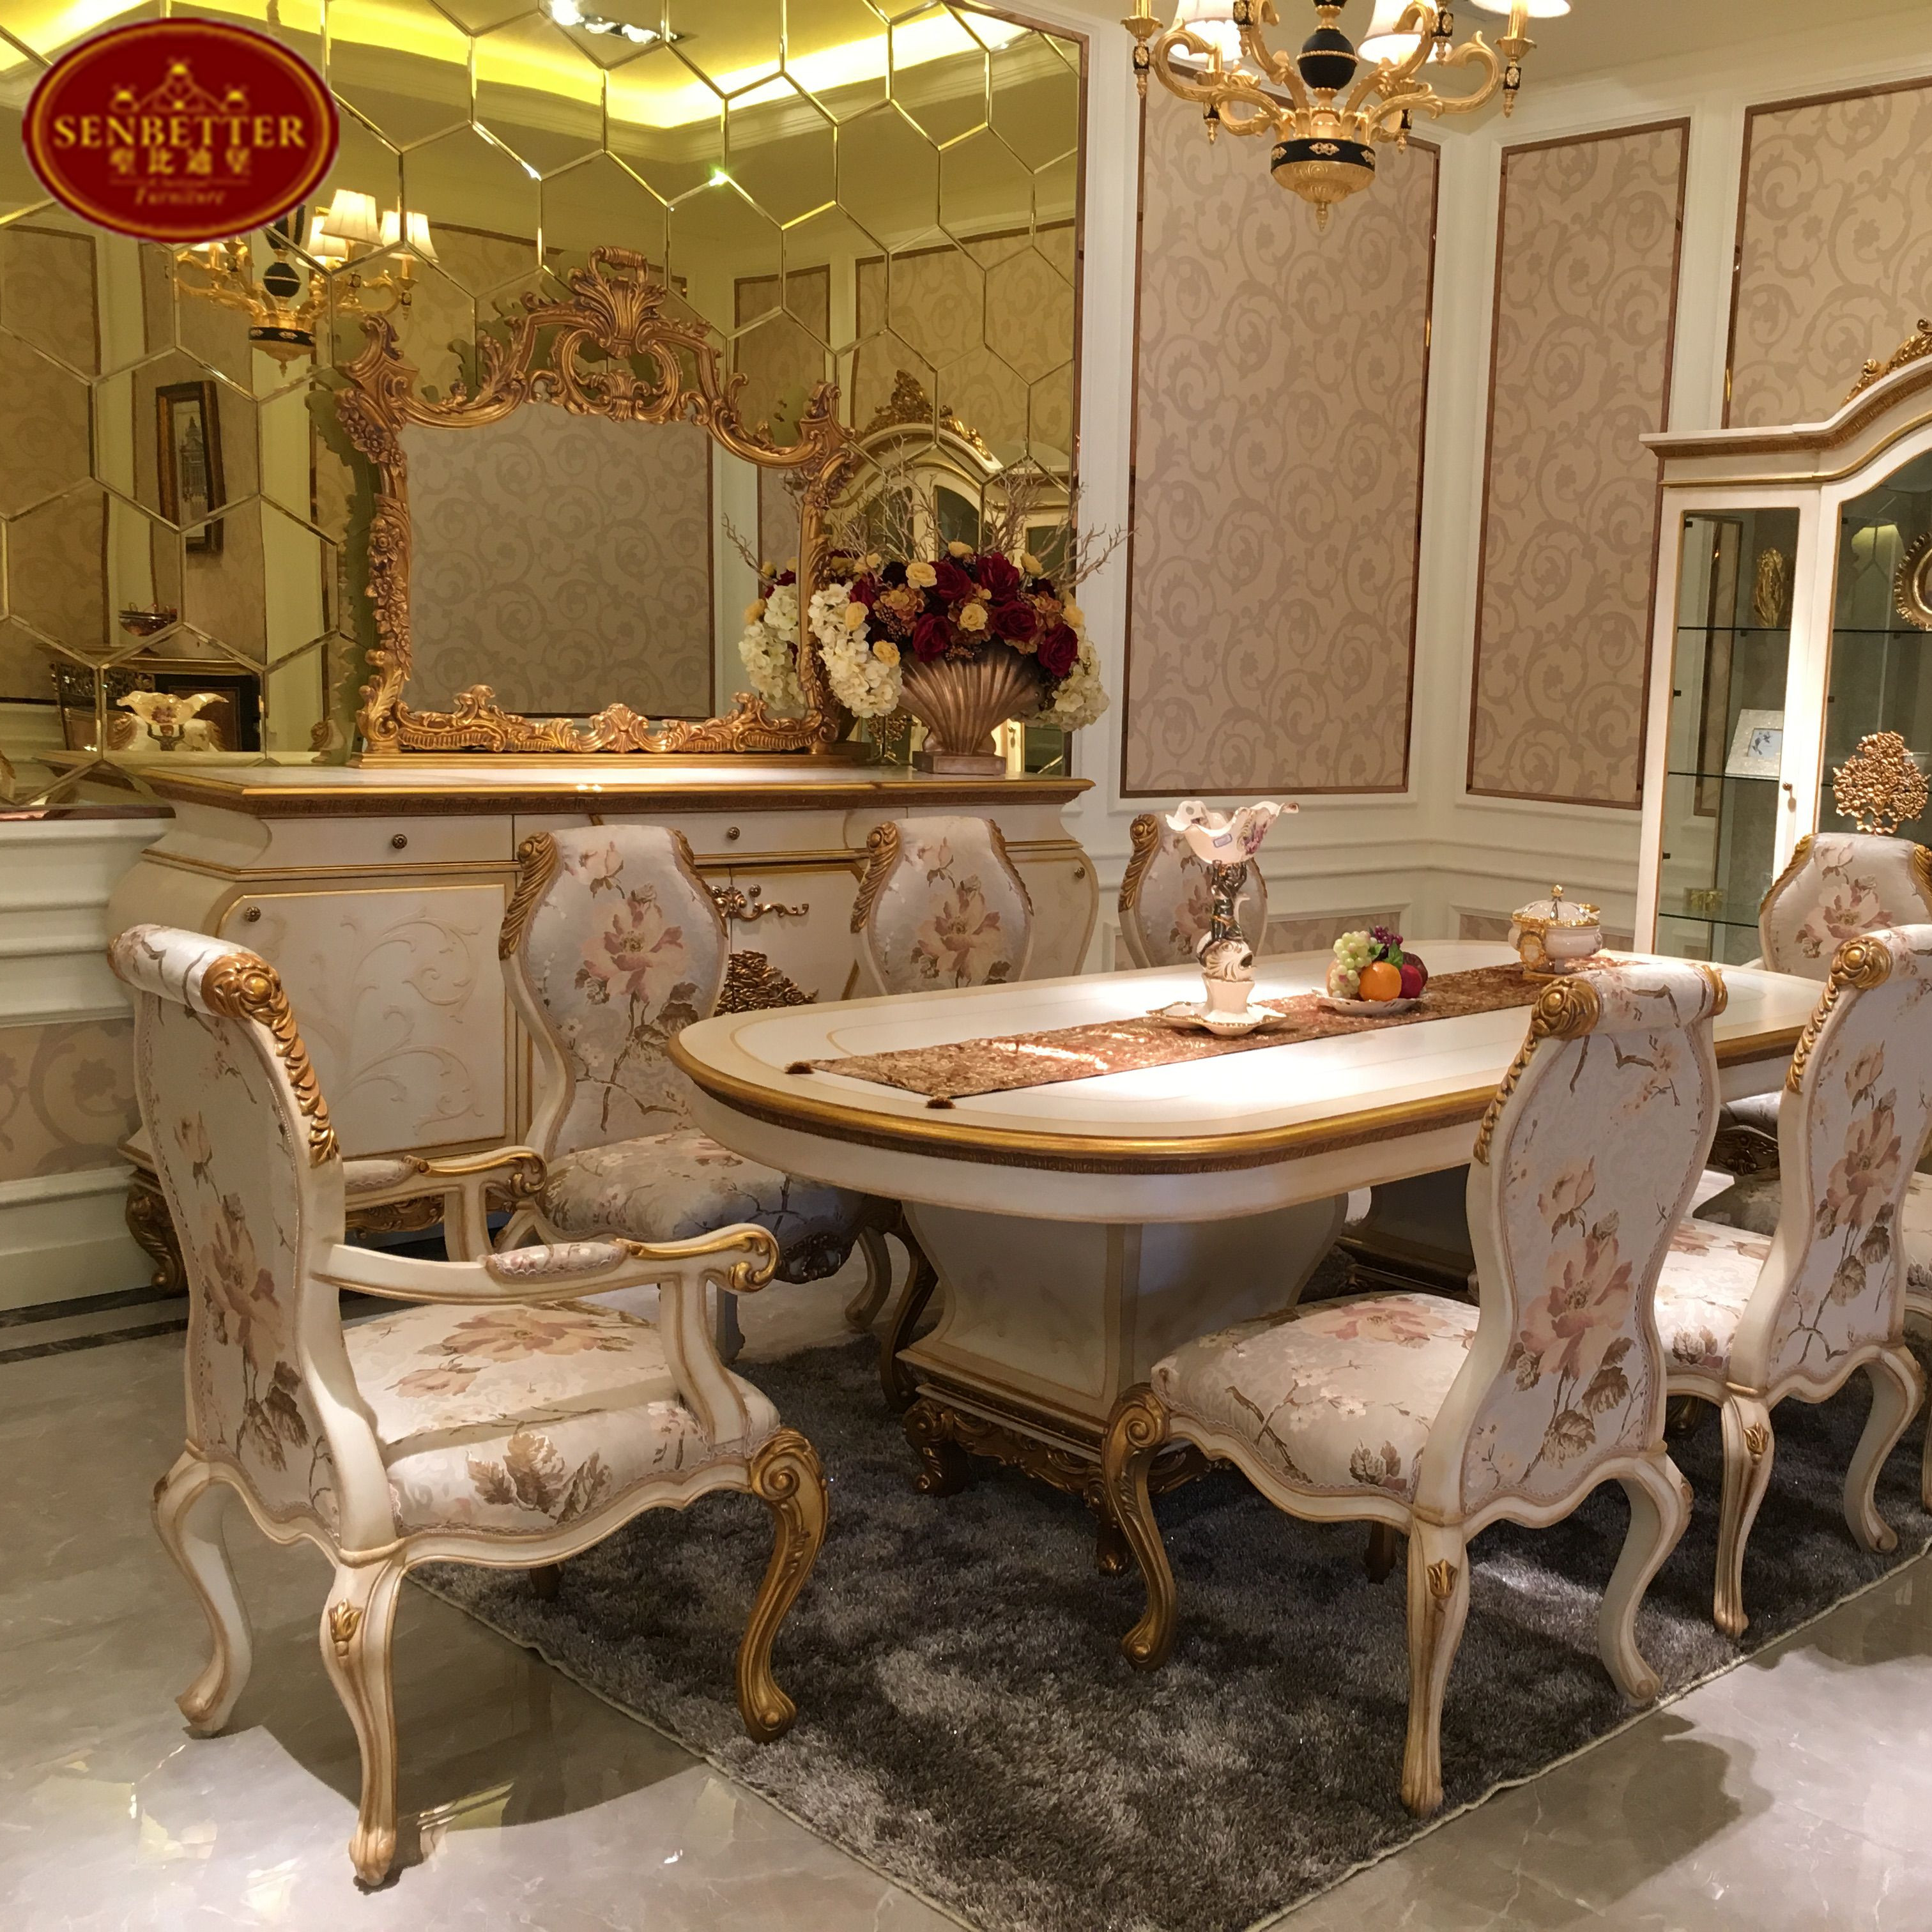 0067 Luxury golden wood dining furniture, classic country style dining room  set, View classic country style dining set, SENBETTER Product Details from  ...